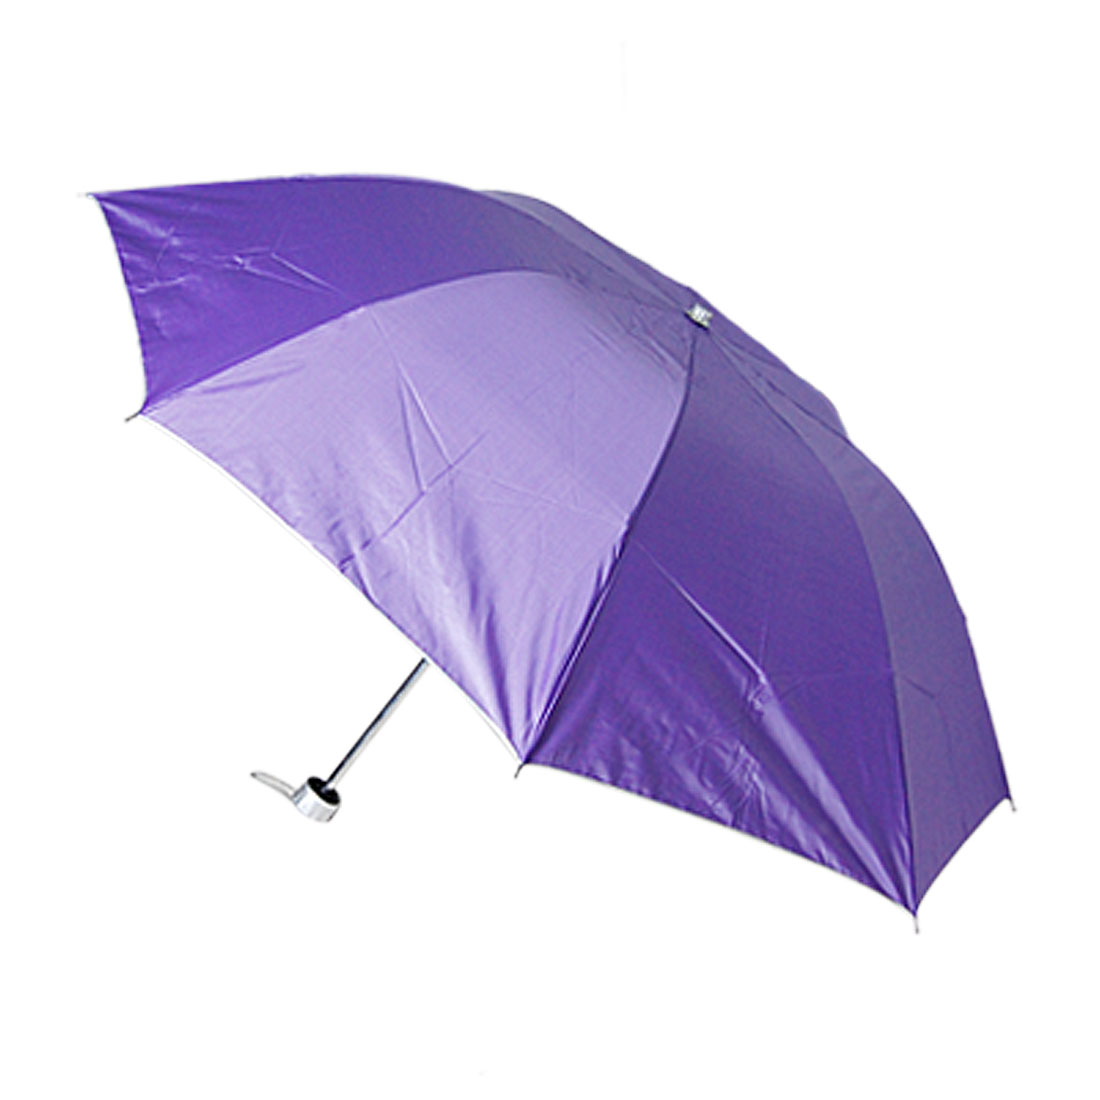 Retractable Shaft Fabric Purple Canopy 3 Folding Umbrella